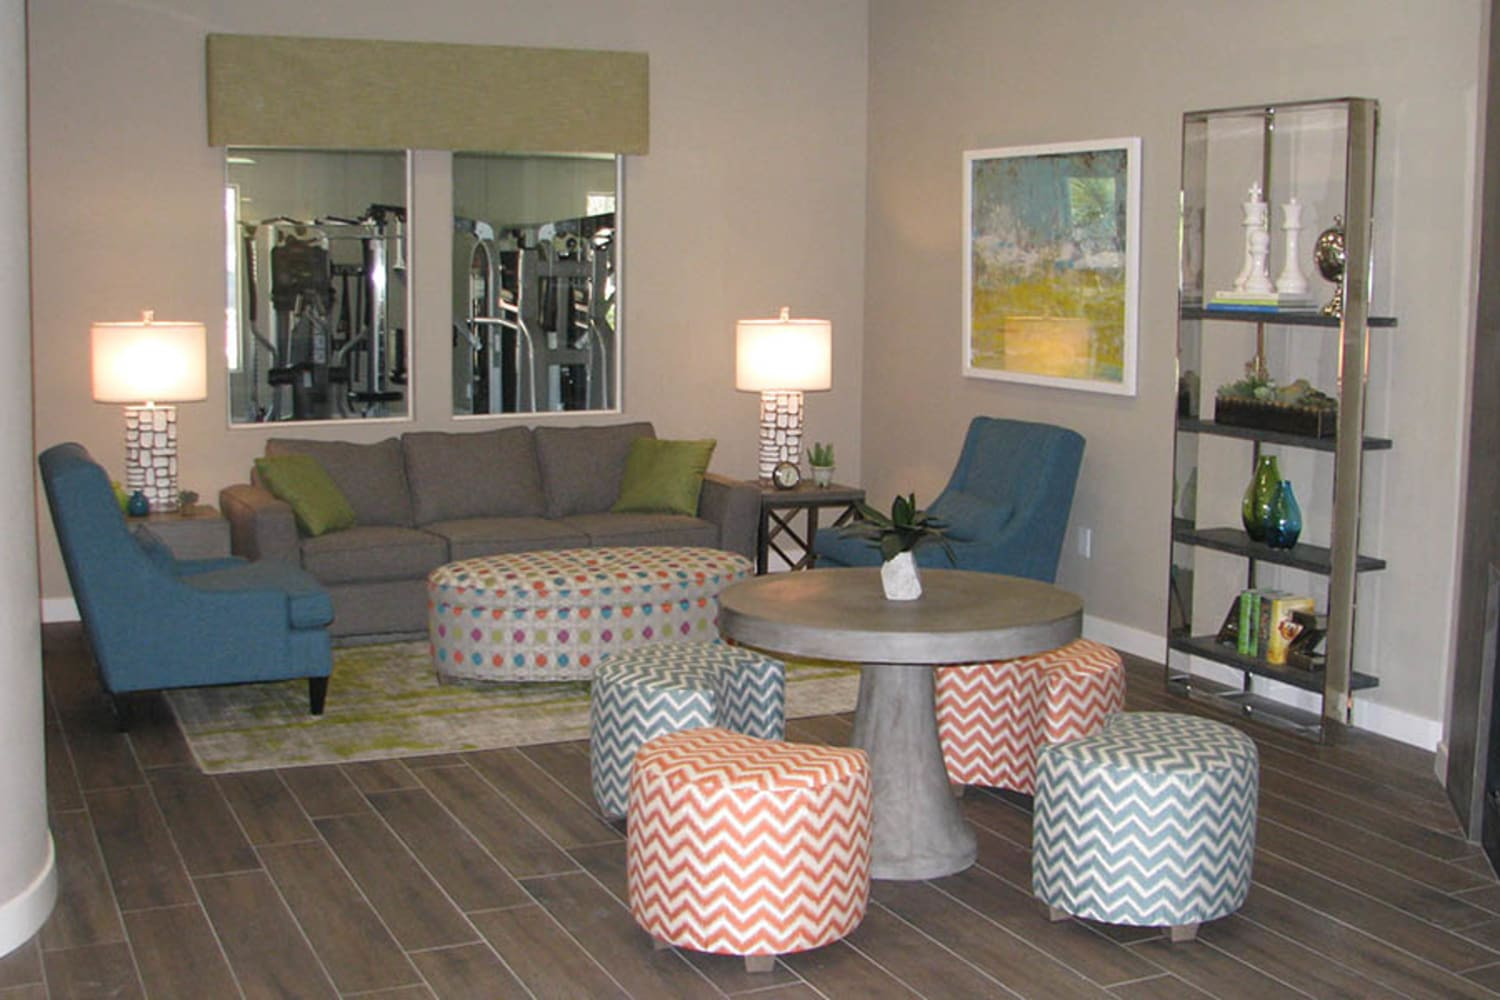 Ocotillo Bay Apartments in Chandler, Arizona, offer a fun and comfortable community clubhouse